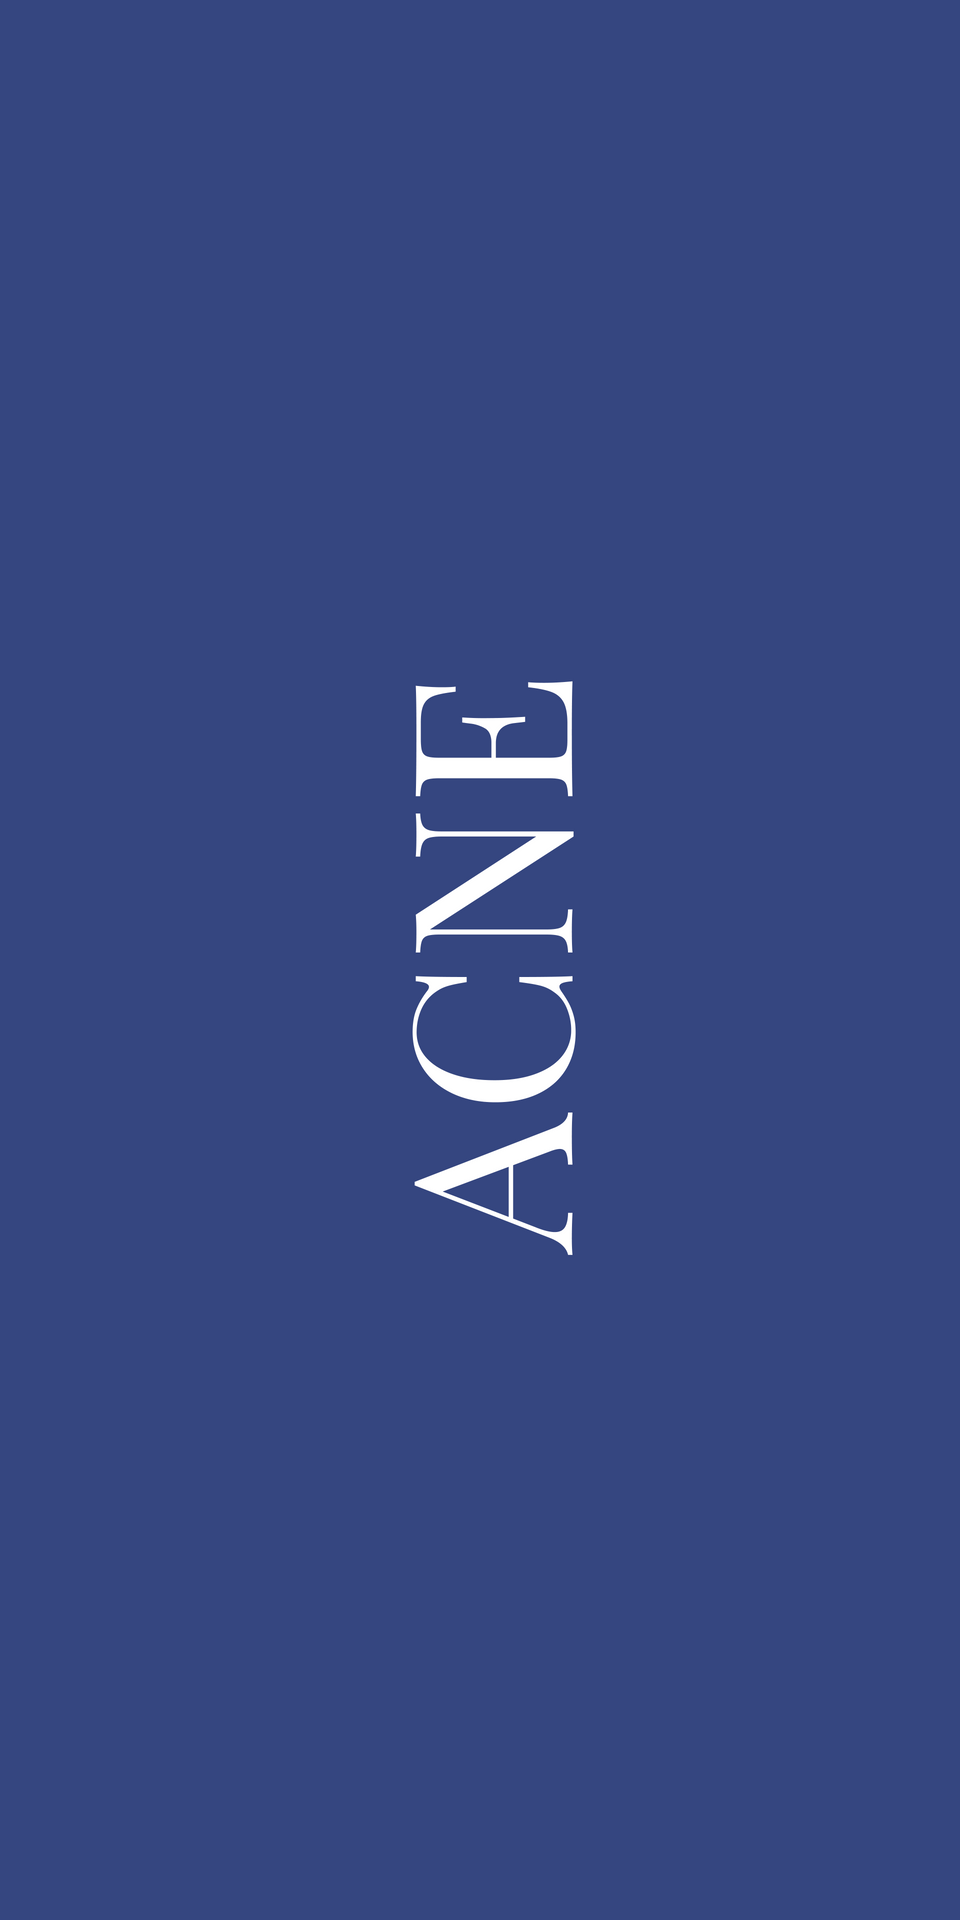 ACNE on navy blue background